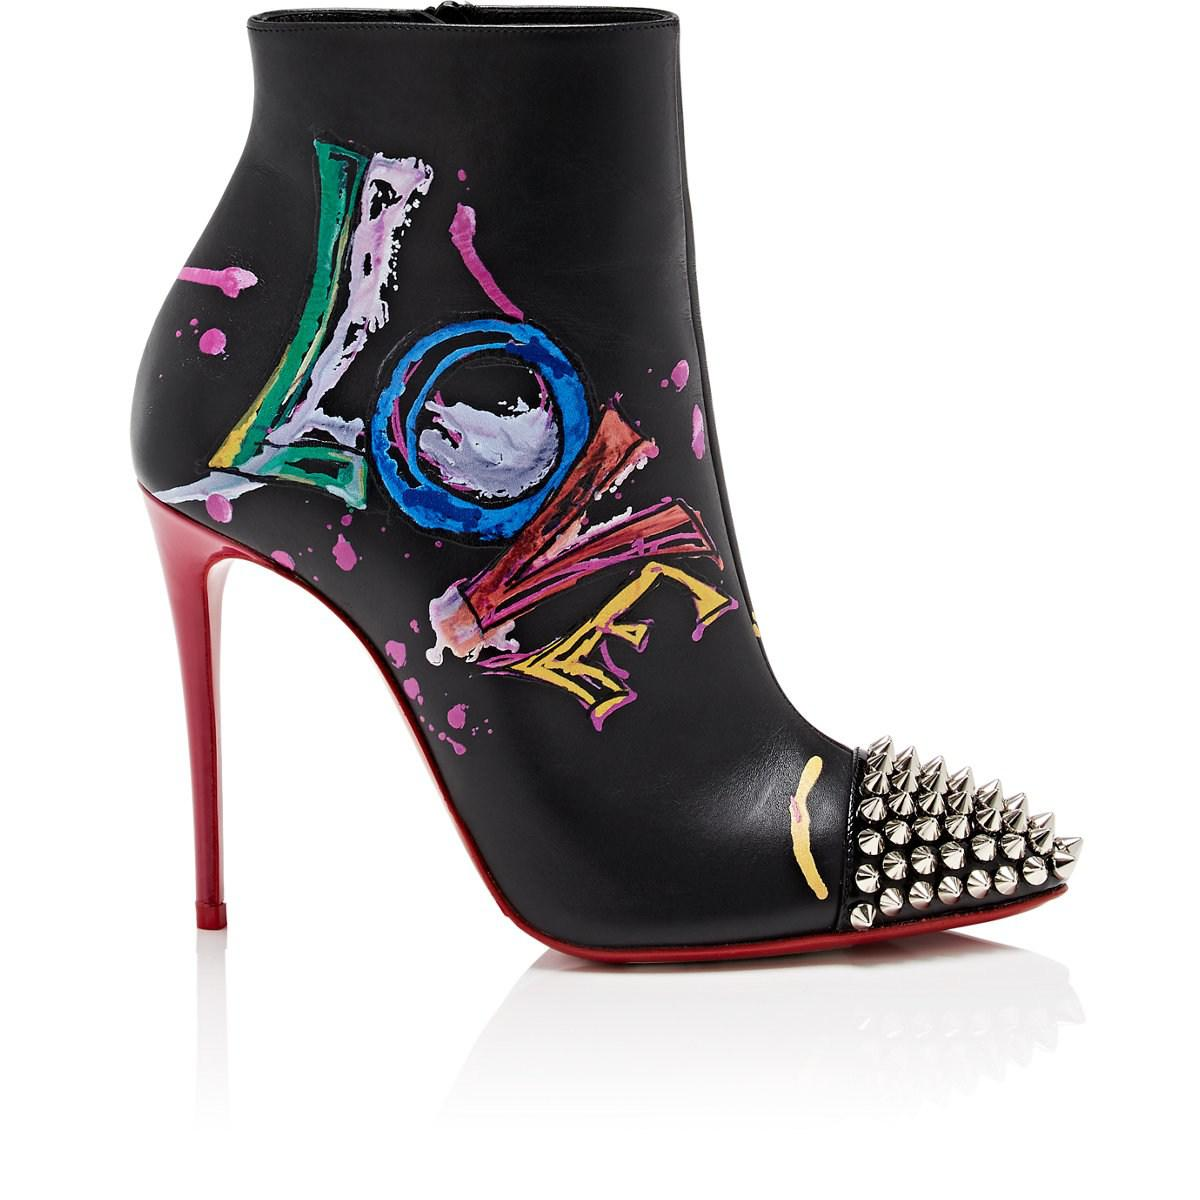 4cbc79e8eb78 ... clearance christian louboutin. womens black in love leather ankle boots  c91ad 1cc45